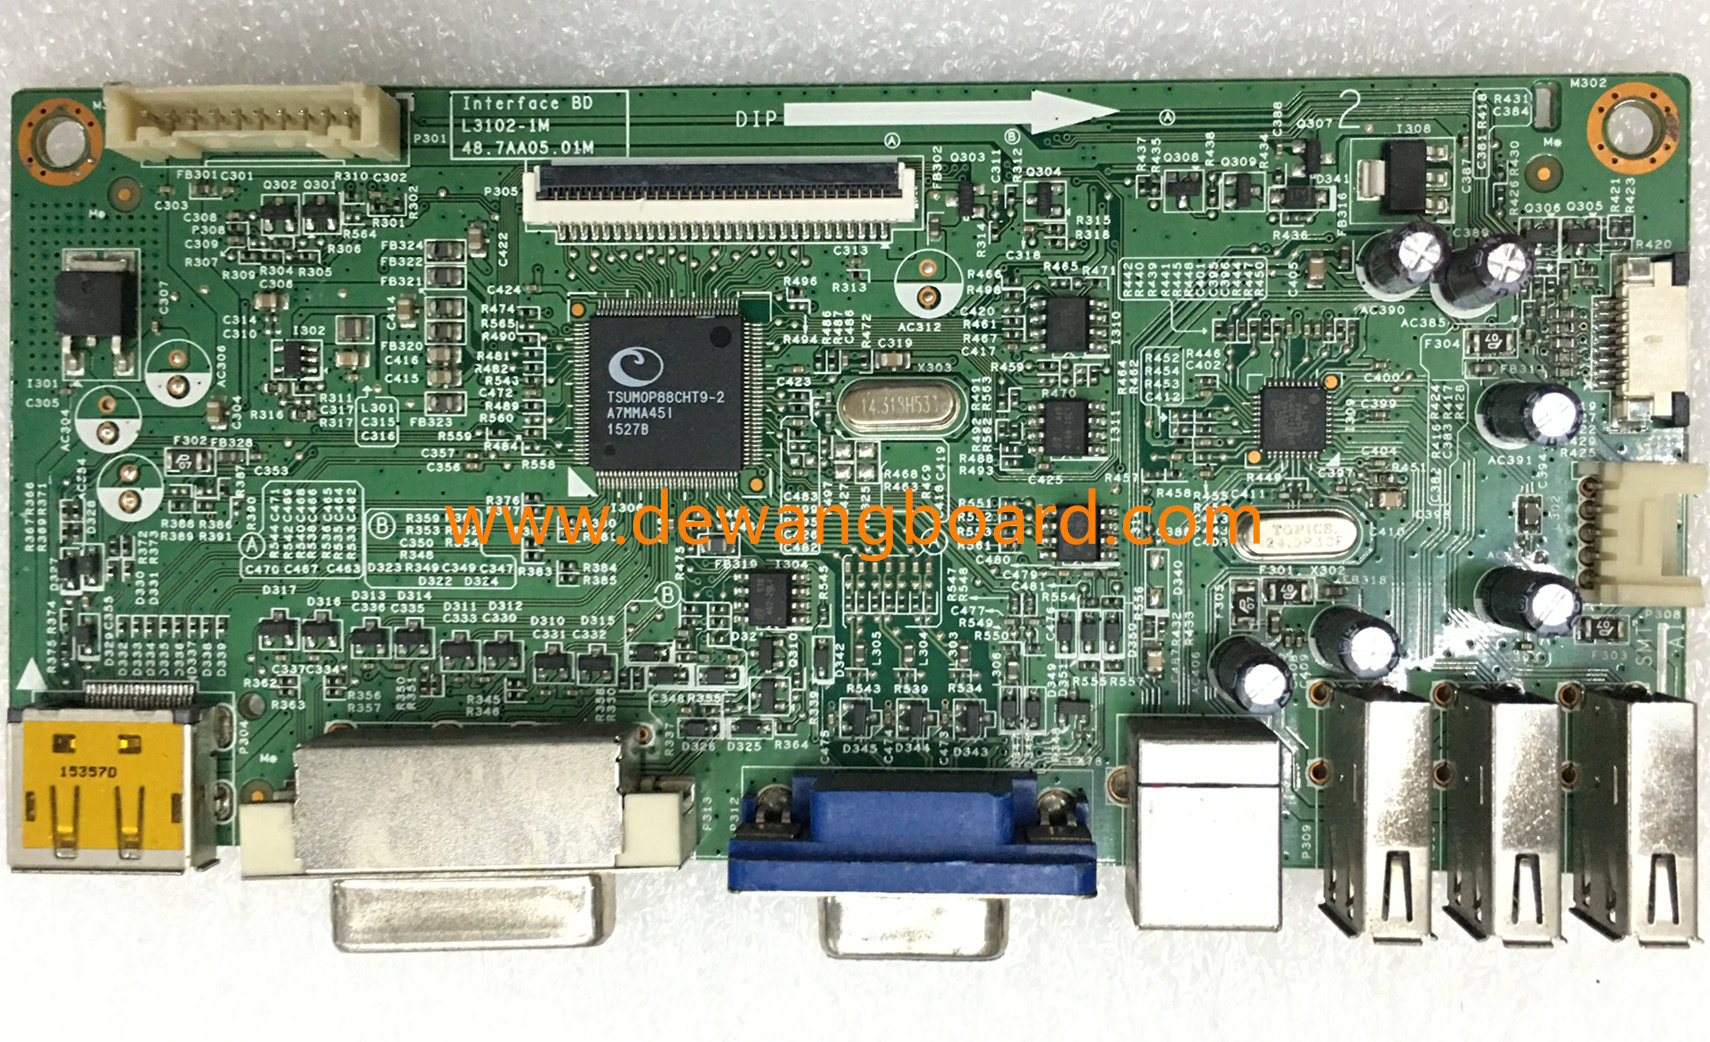 dell P2014H main board L3102-1M 48.7AA05.01M